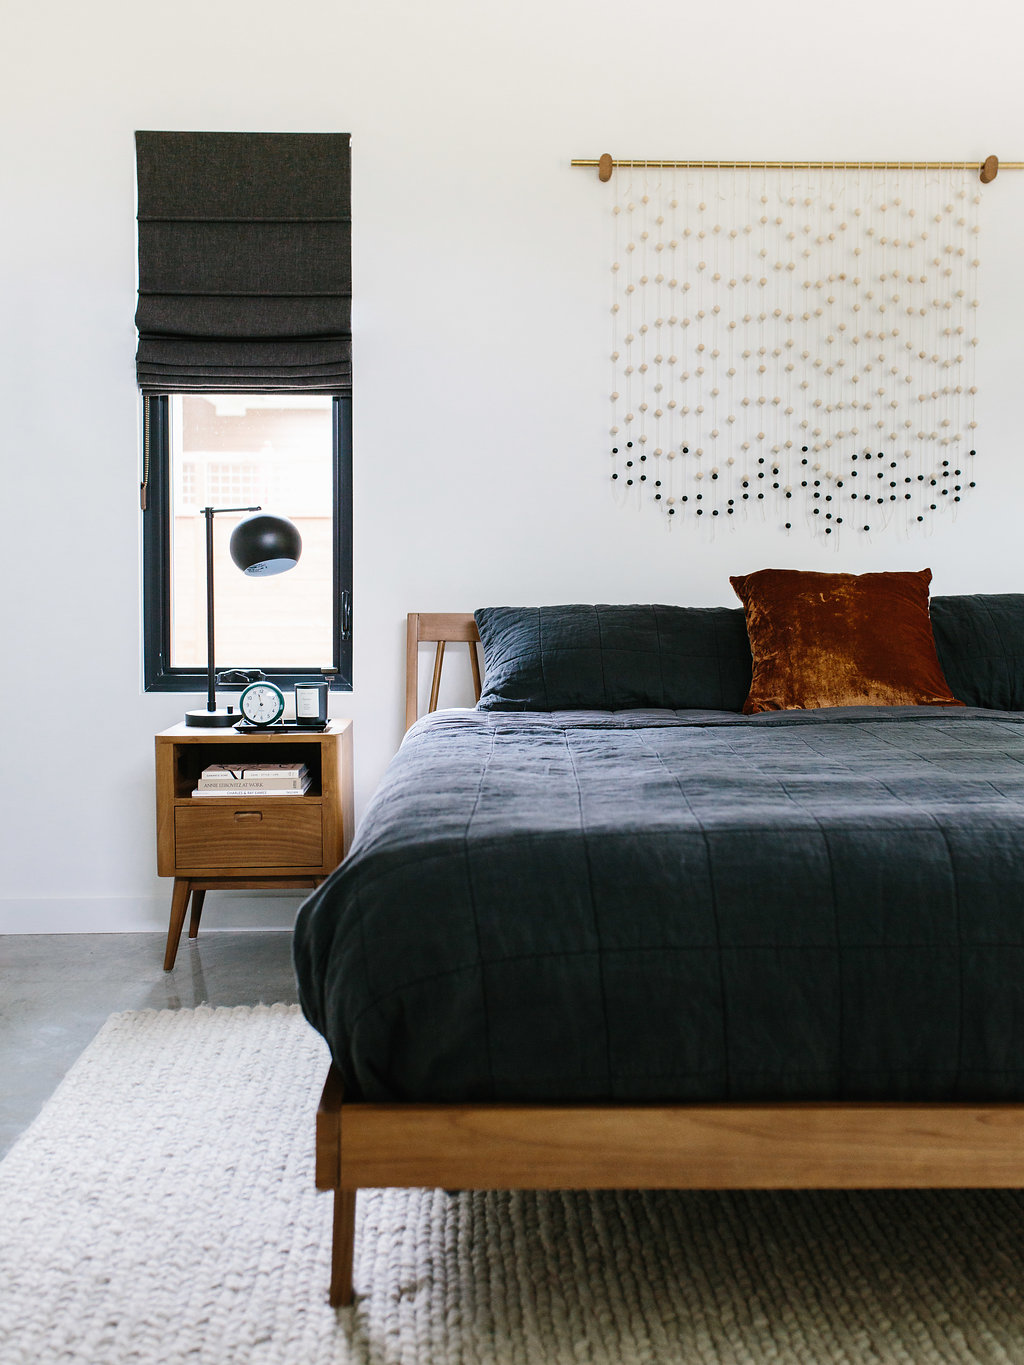 Absorbing Matte Finish This Room Is Most Definitely Walls Rug Is Our Austin Casa Master Bedroom Reveal Gallery Base Cream Walls Are Behr Marquee houzz-03 Mid Century Modern Bed